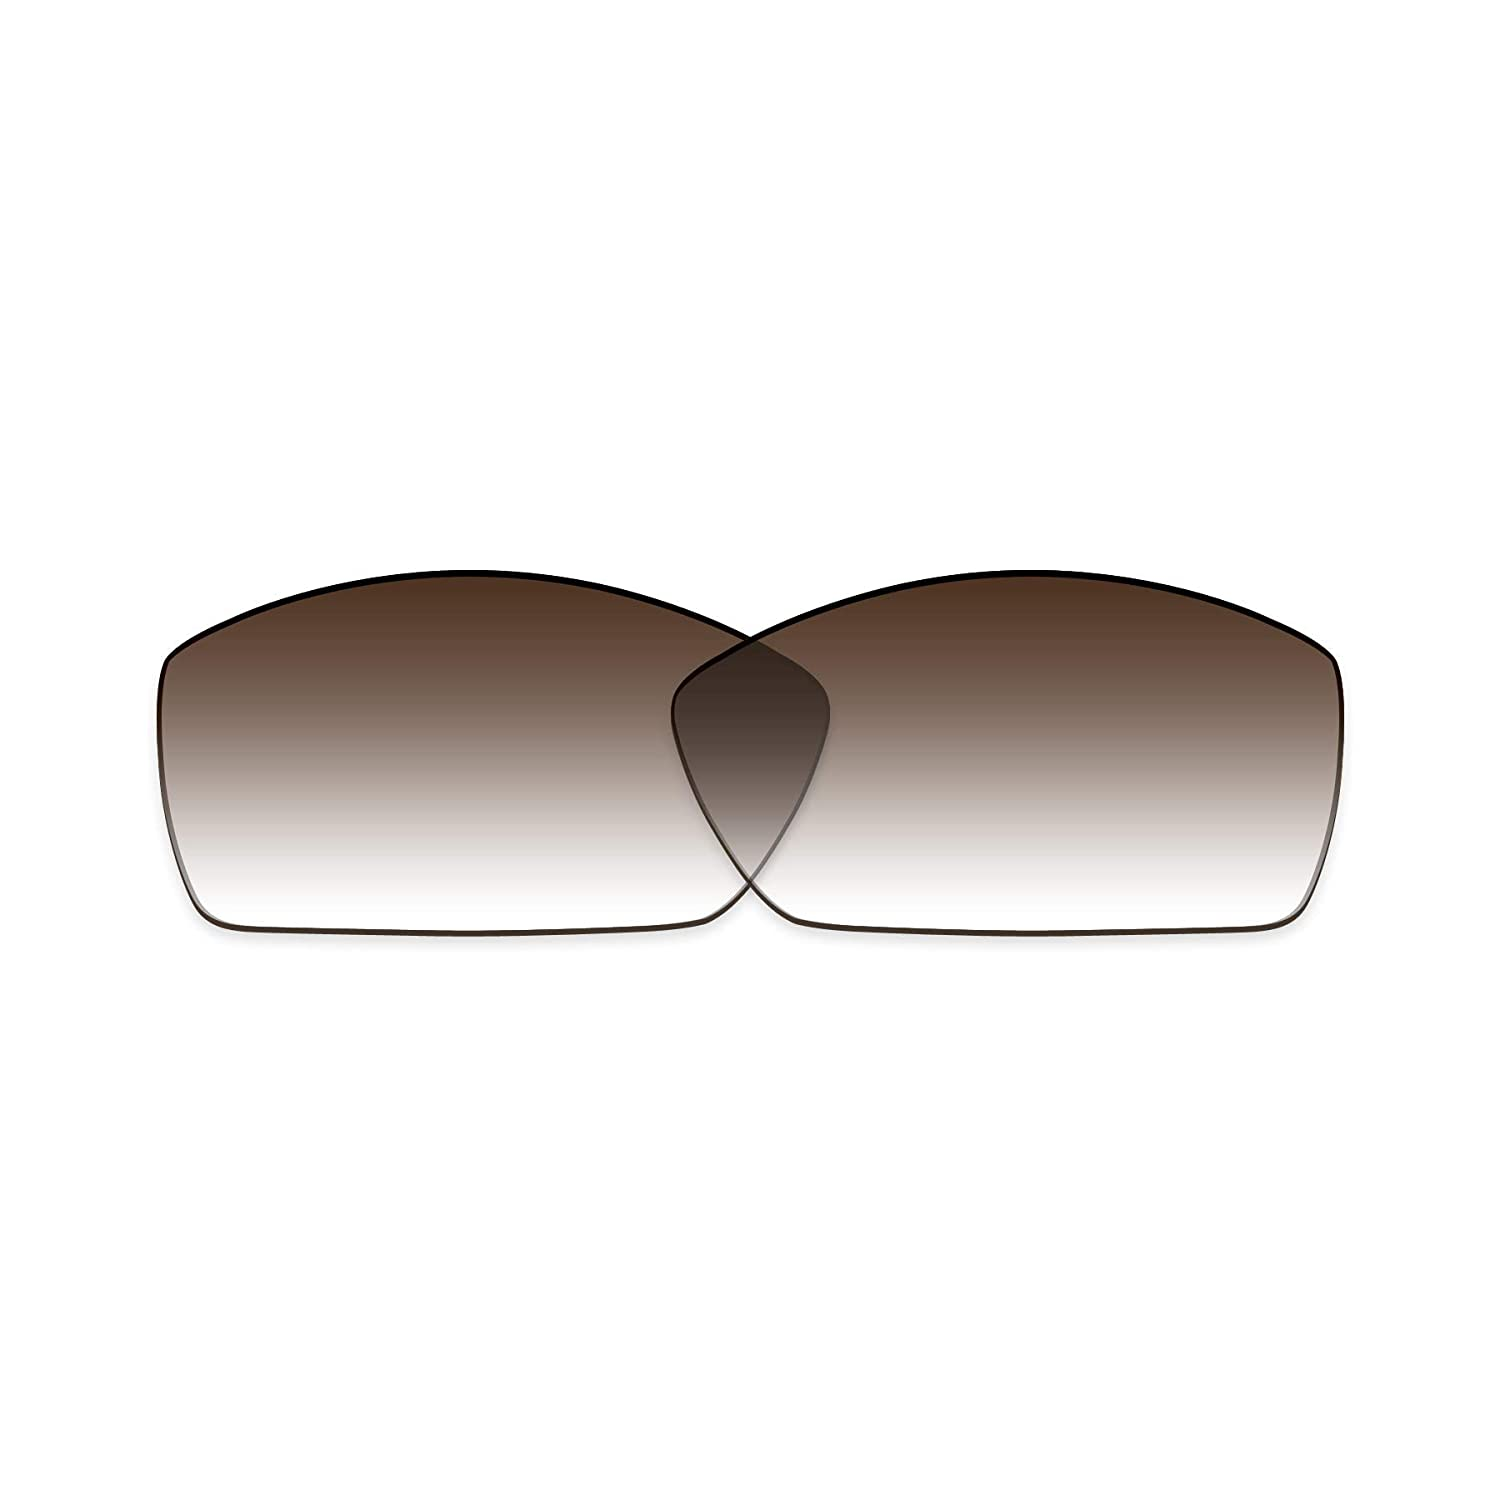 ToughAsNails Polarized Lens Replacement for Costa Del Mar Corbina Sunglass Brown Gradient